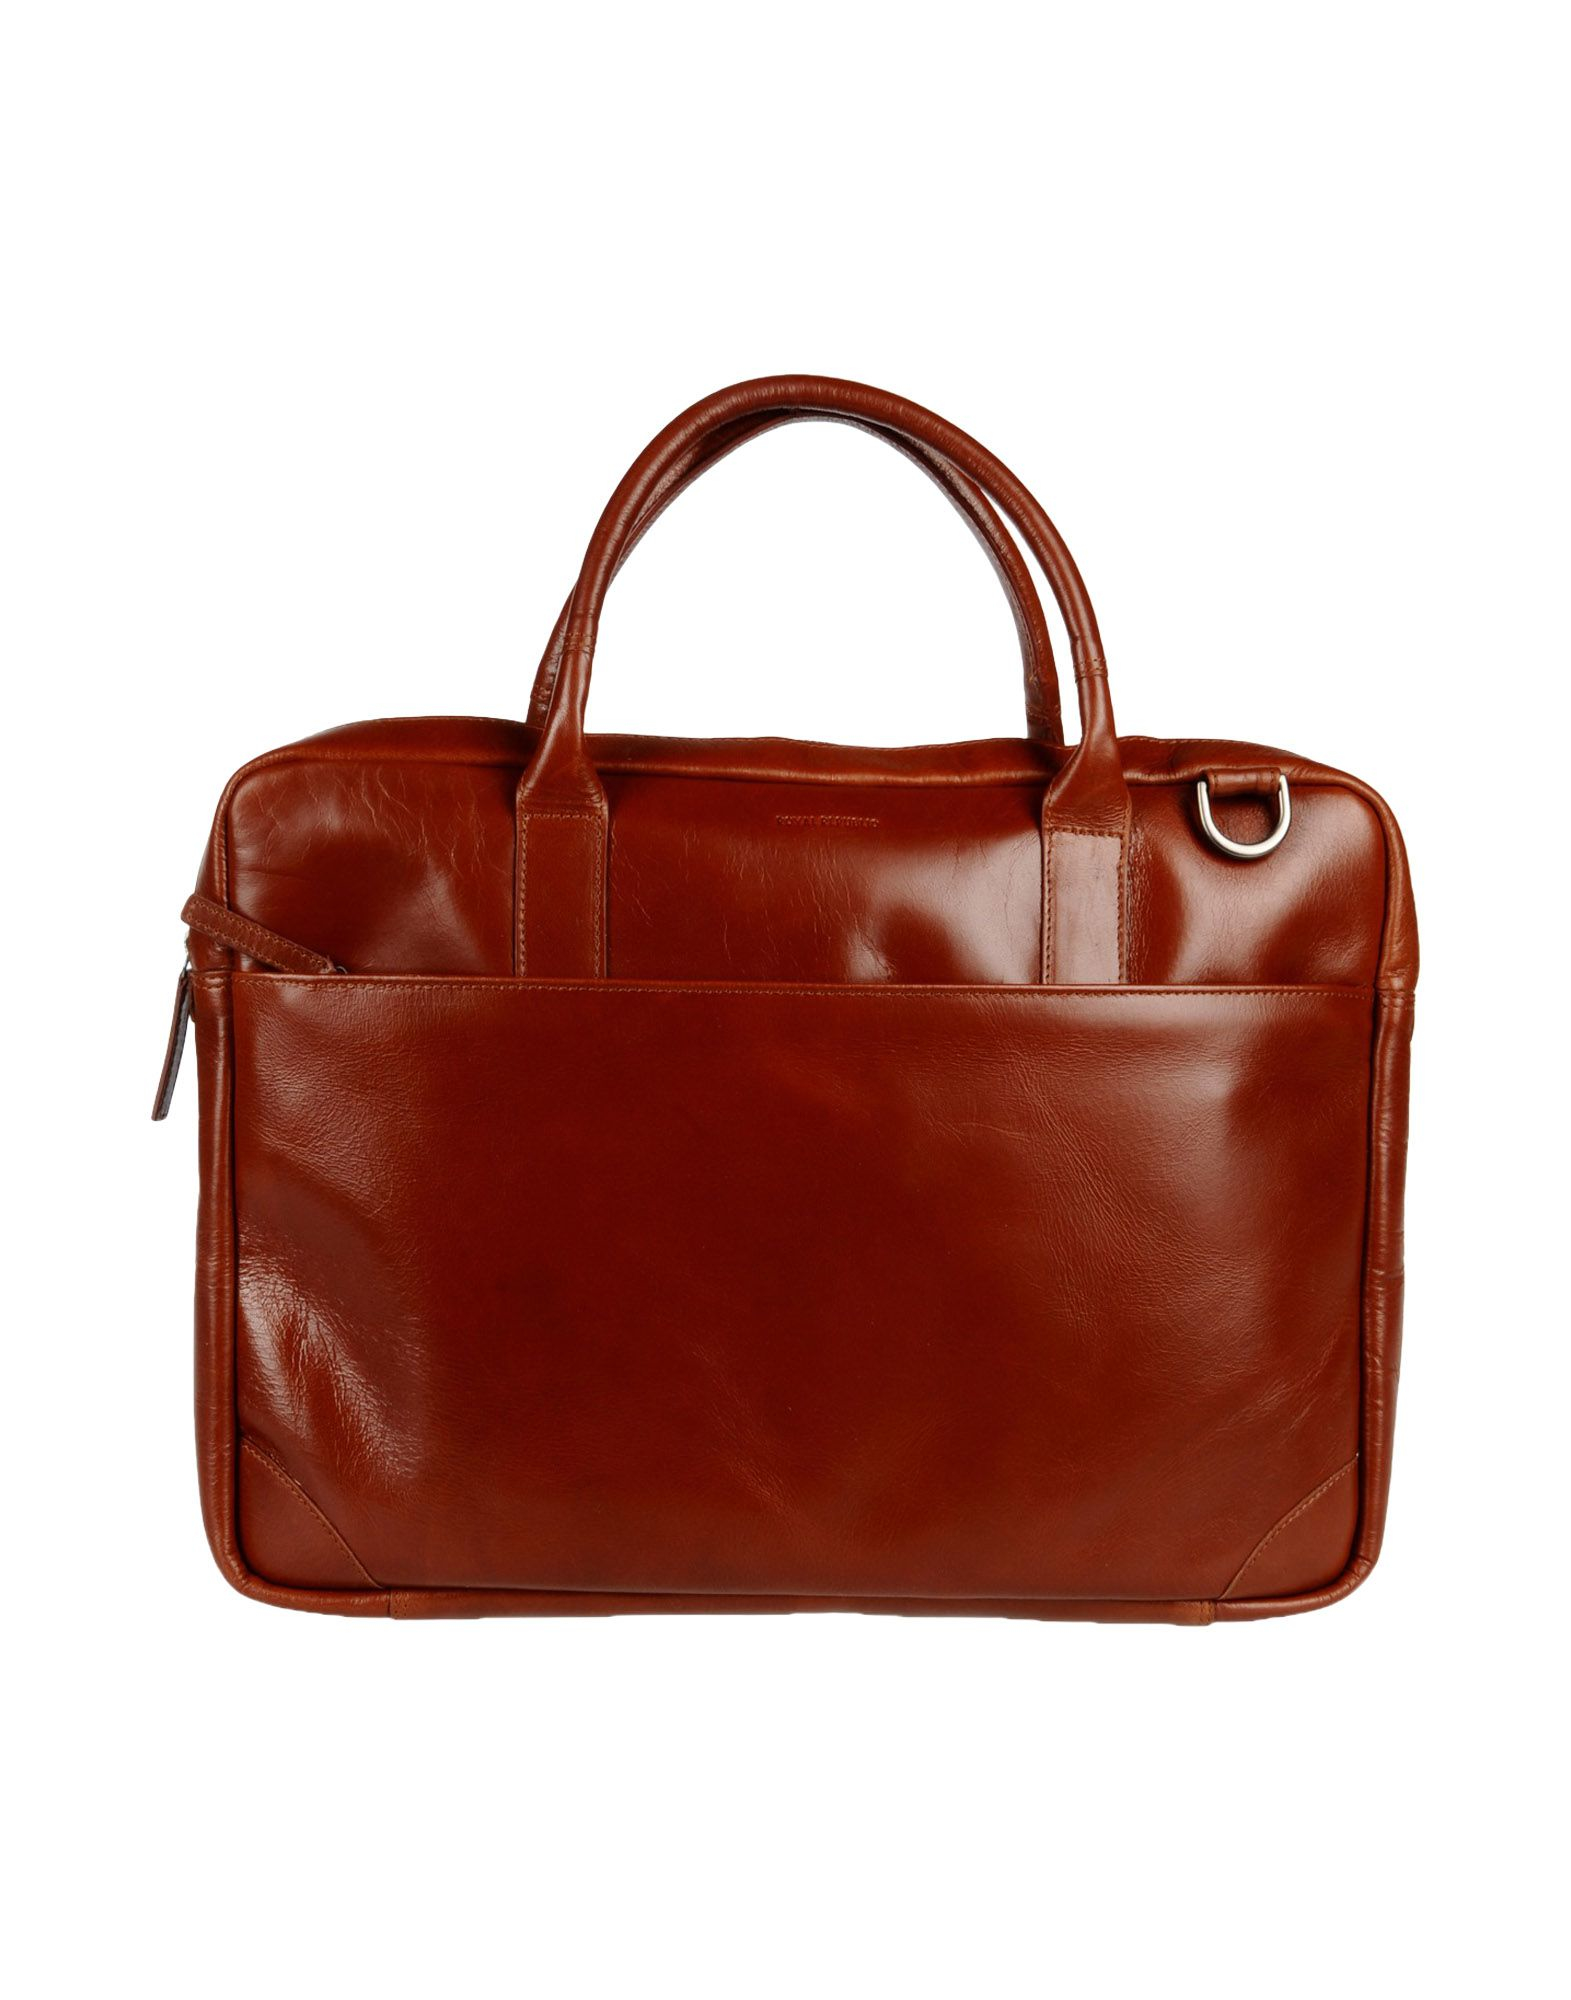 Royal republiq Work Bags in Brown for Men